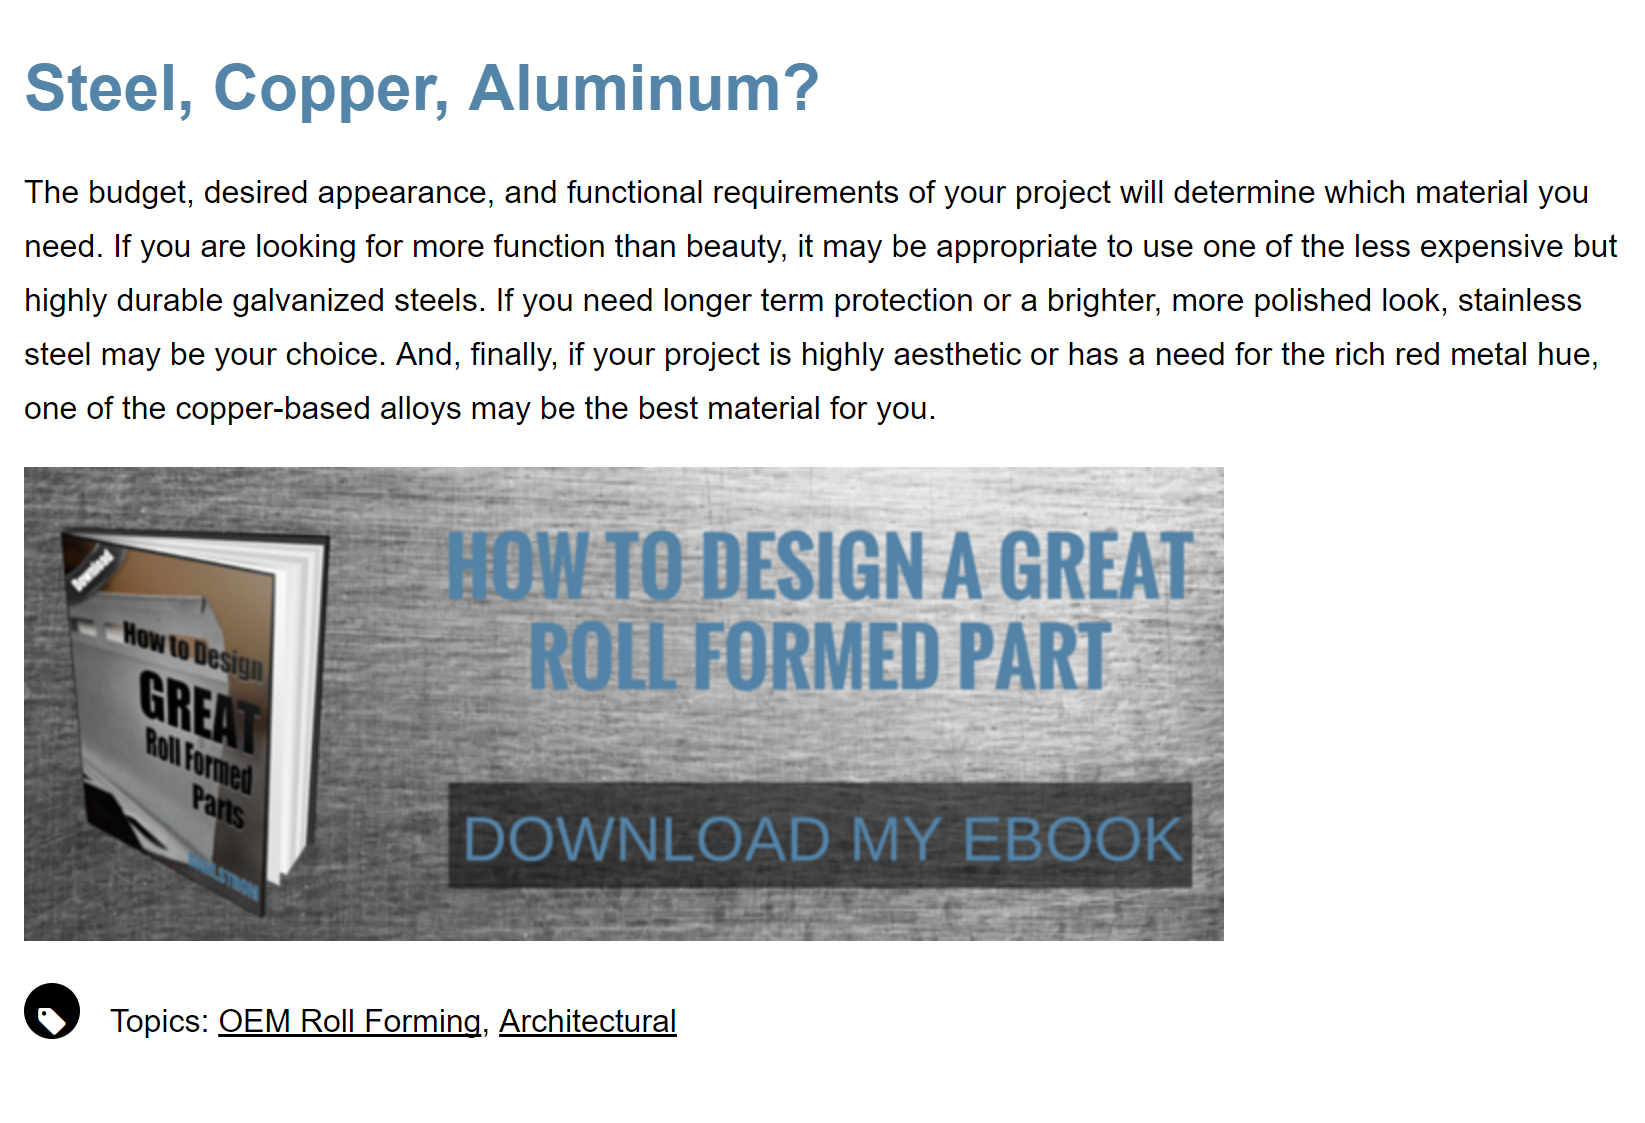 best-metal-for-outdoor-use-blog-cta.png